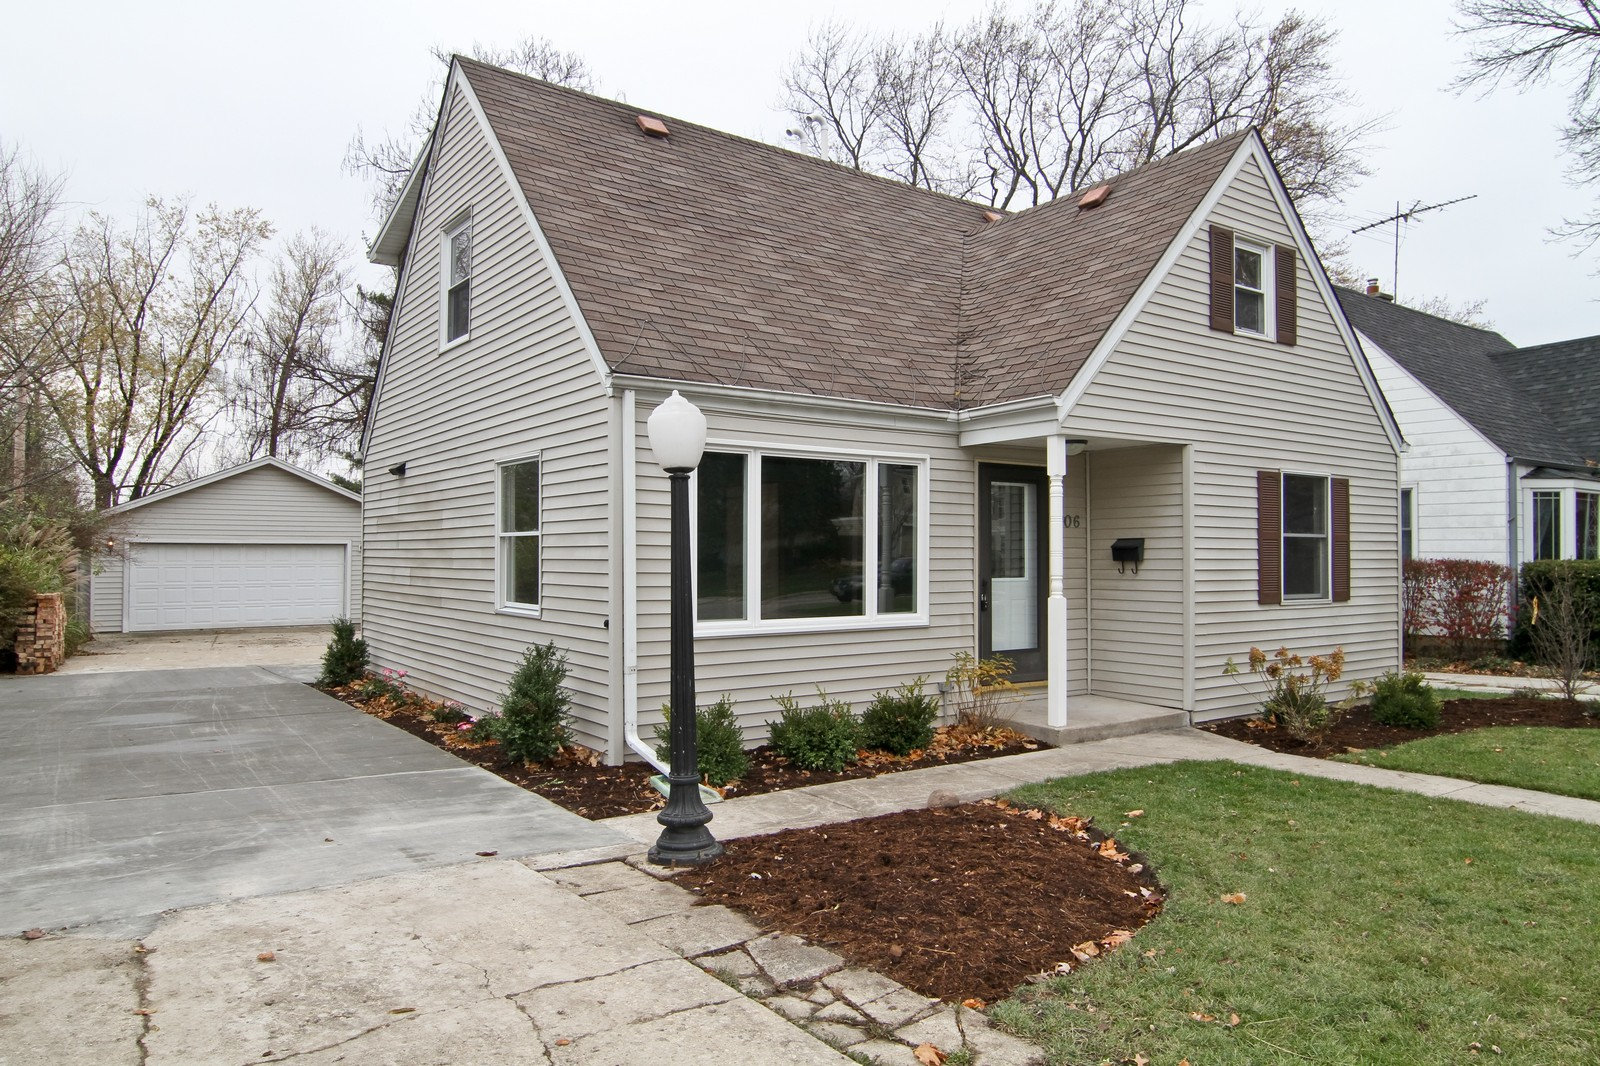 Real Estate Photography - 406 N Garfield St, Lombard, IL, 60148 - Front View